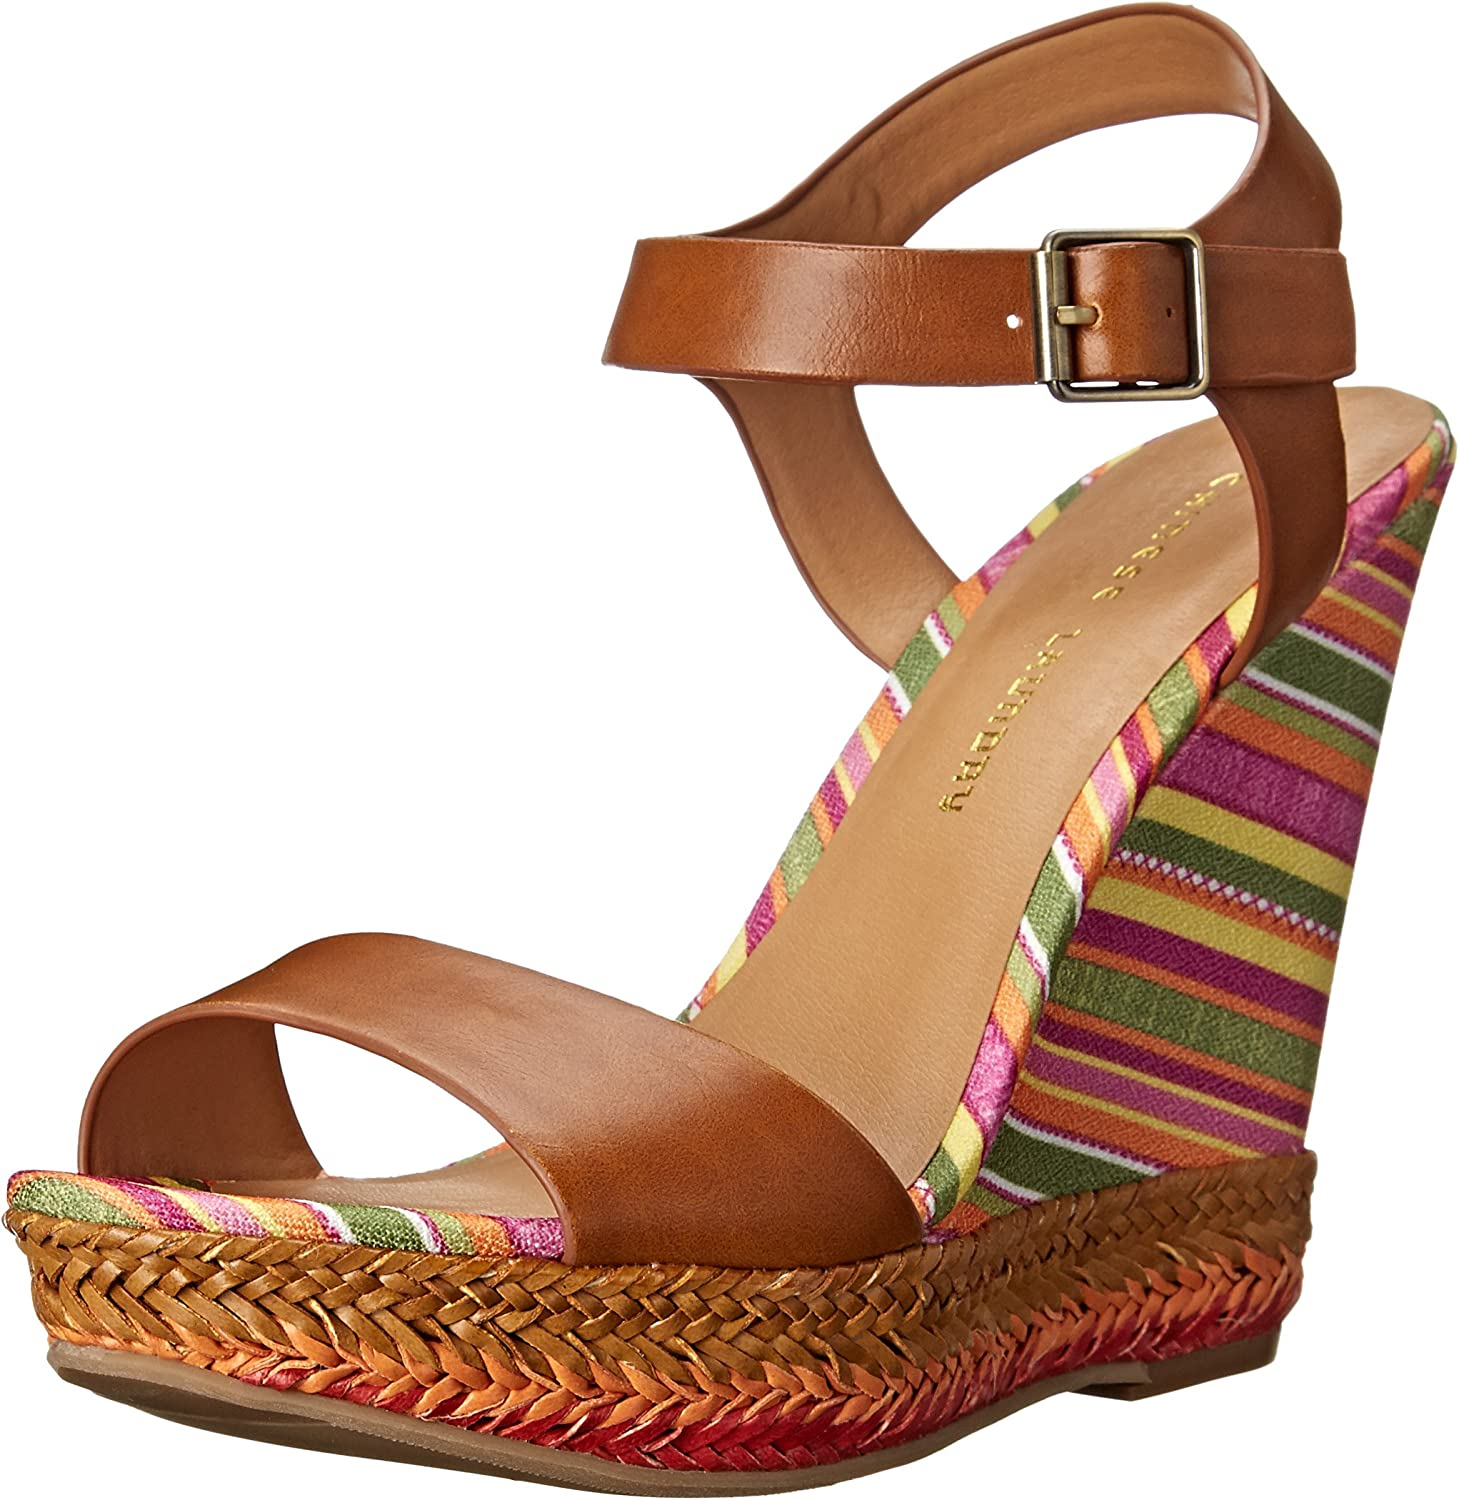 Max 72% OFF Product Chinese Laundry Women's Sandal Mahalo Wedge